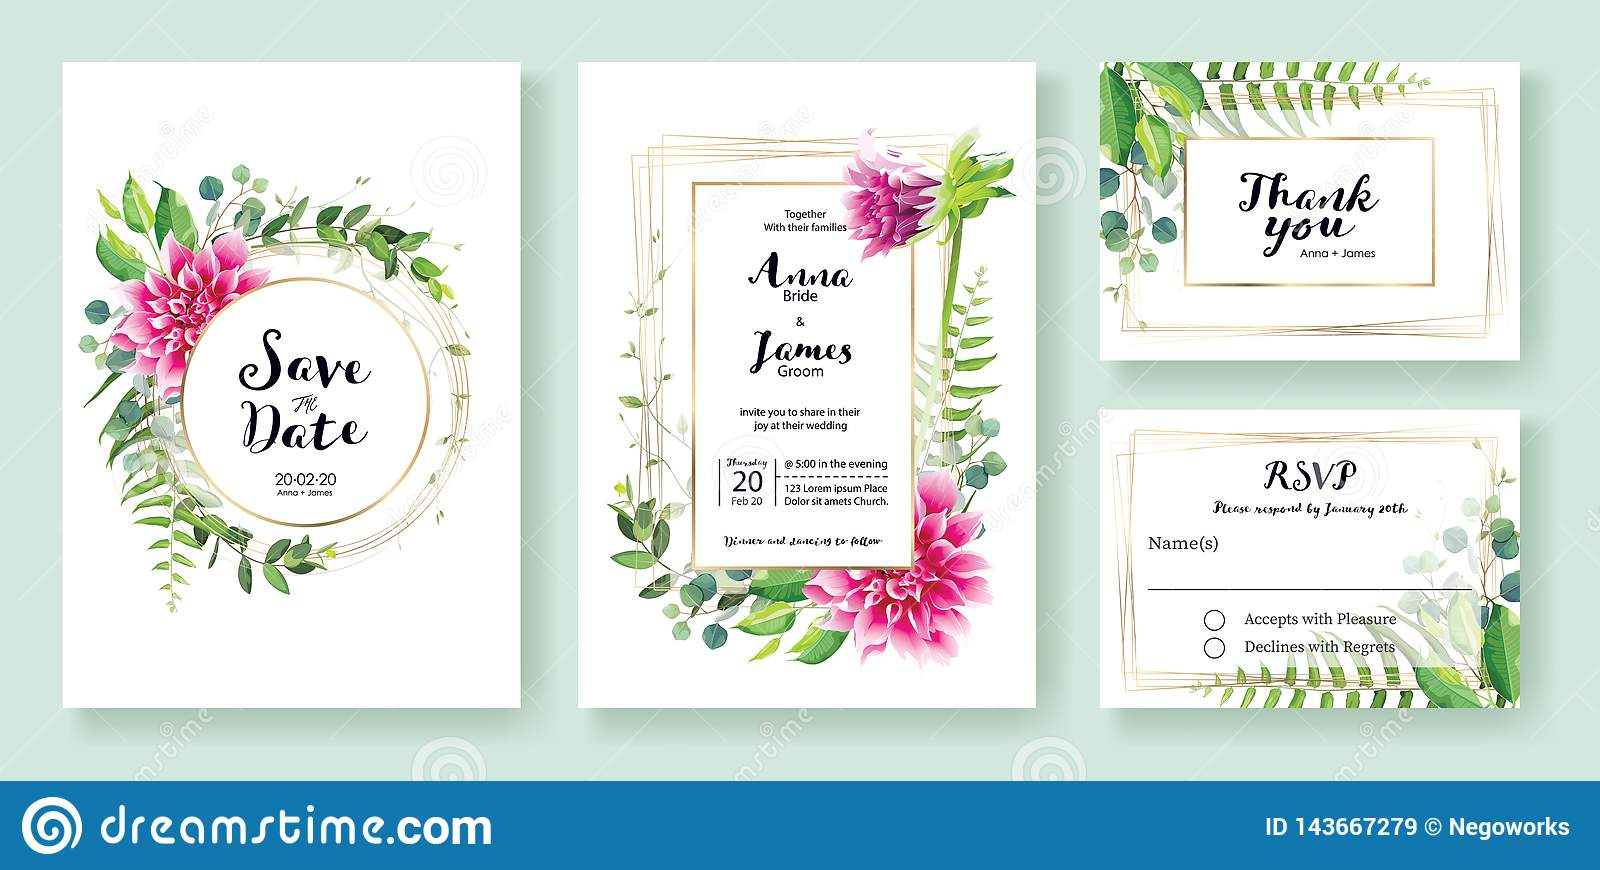 Wedding Invitation, save the date, thank you, rsvp card Design template. Vector. Pink dahlia flowers, fern leaf, silver dollar lea